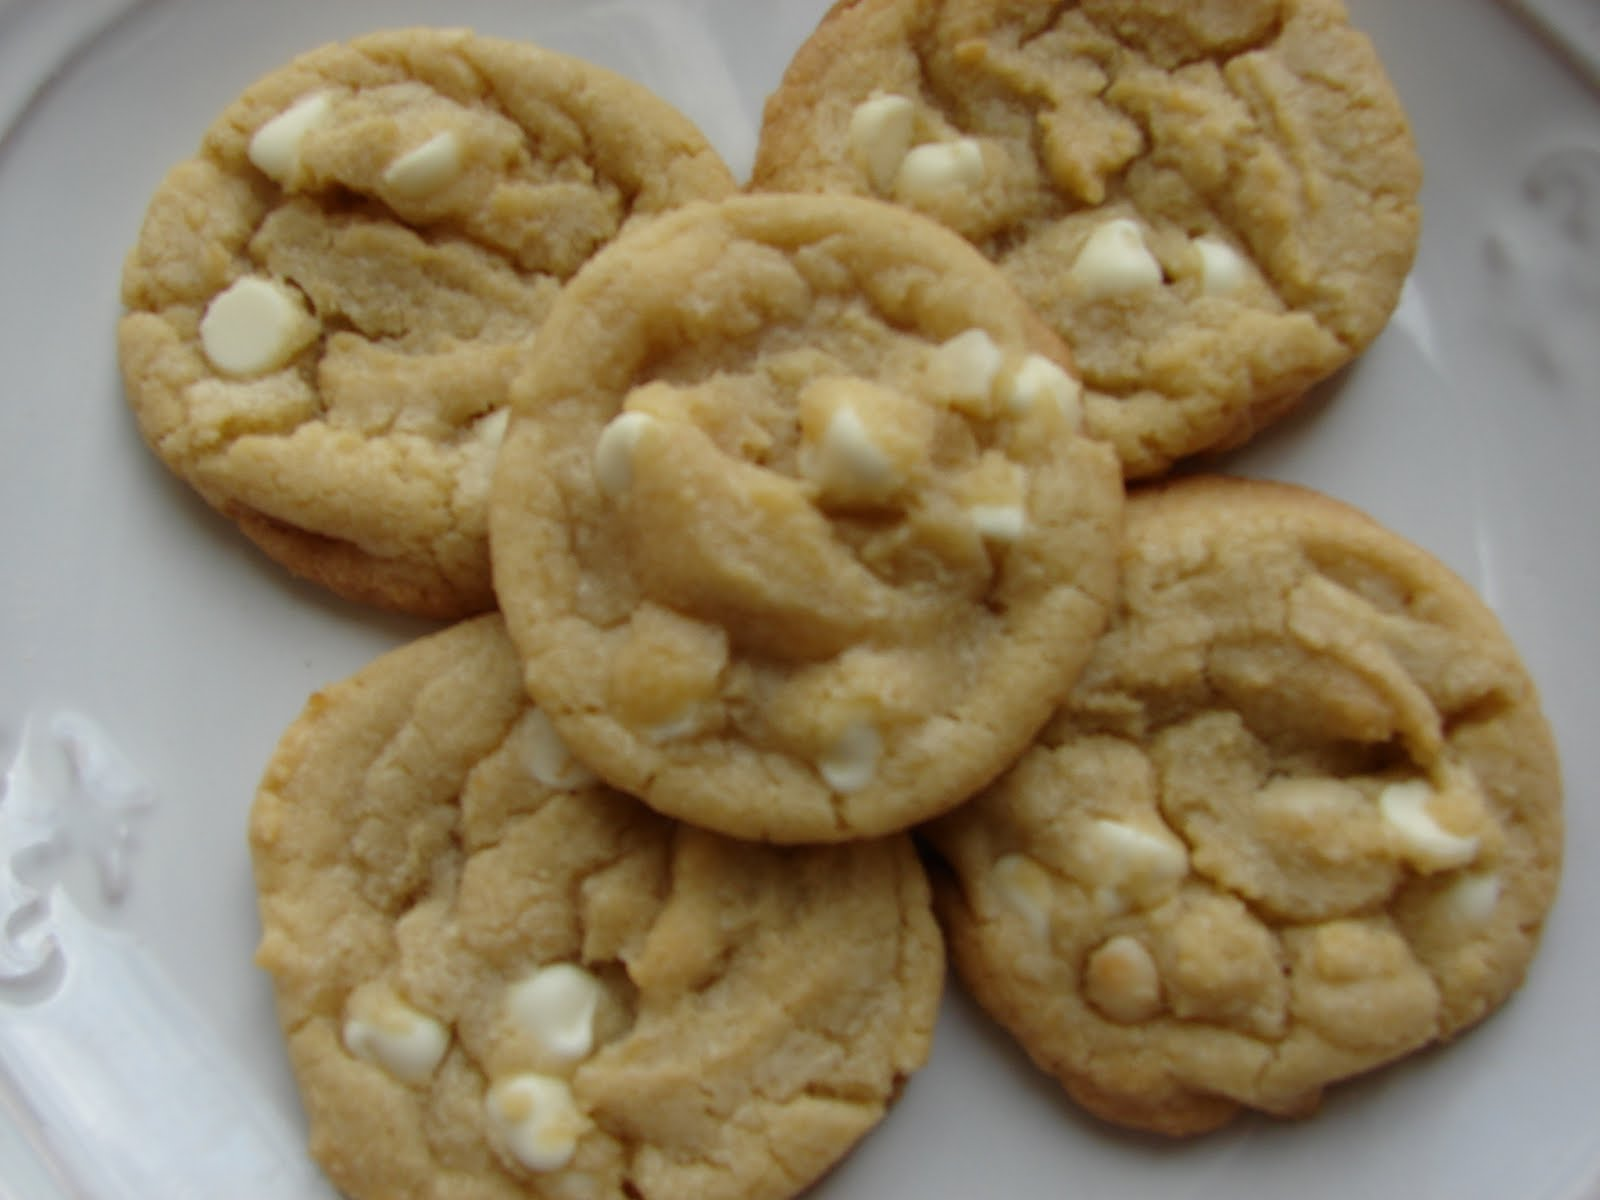 The Royal Cook: White Chocolate Macadamia Nut Cookies